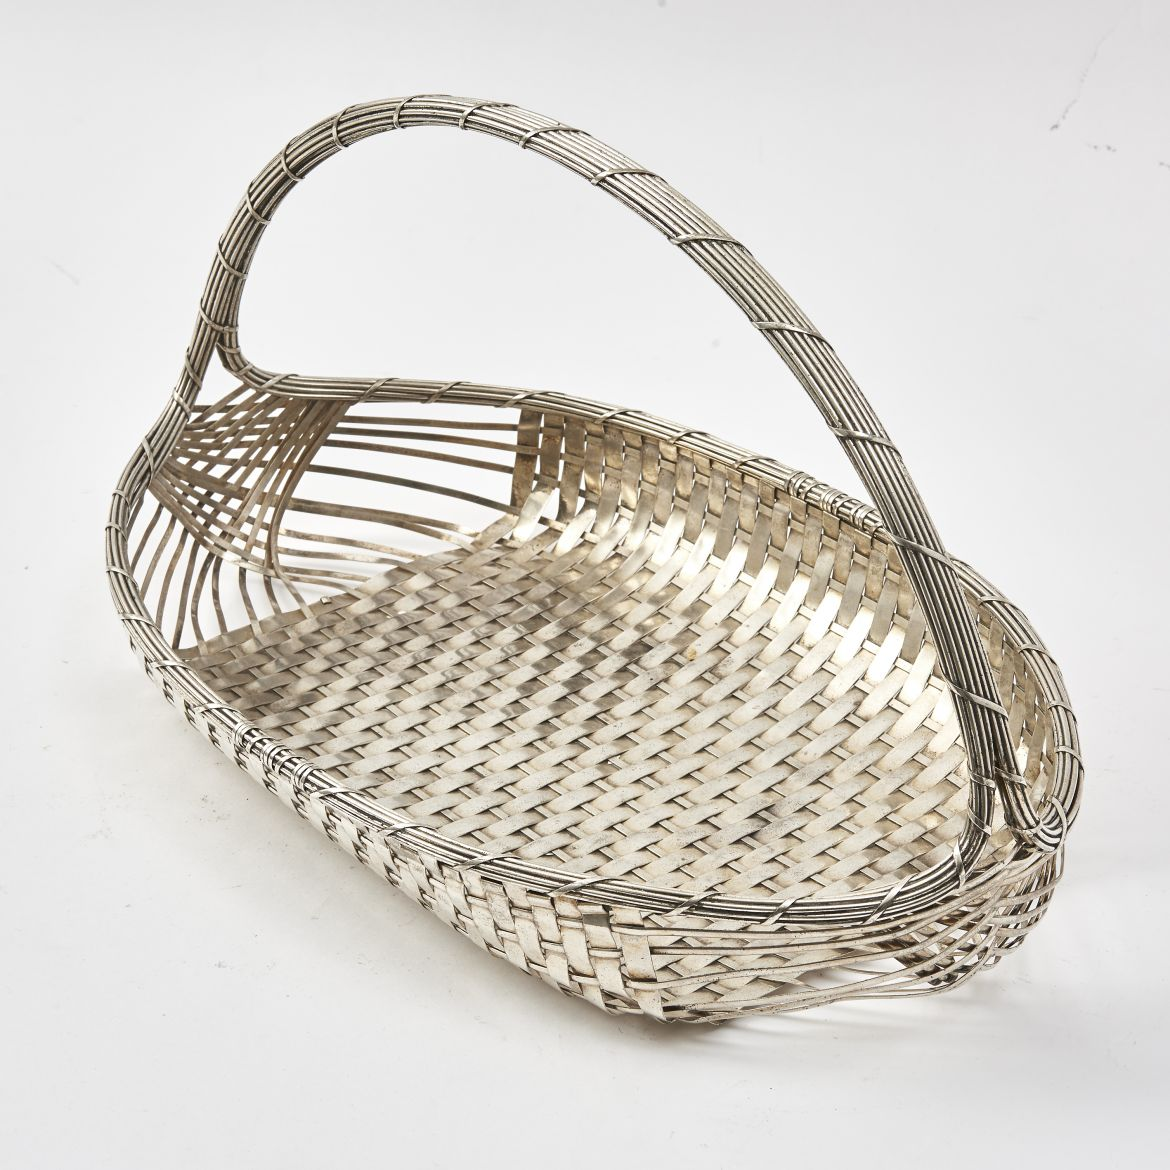 French Silver Plate Oval Bread Basket